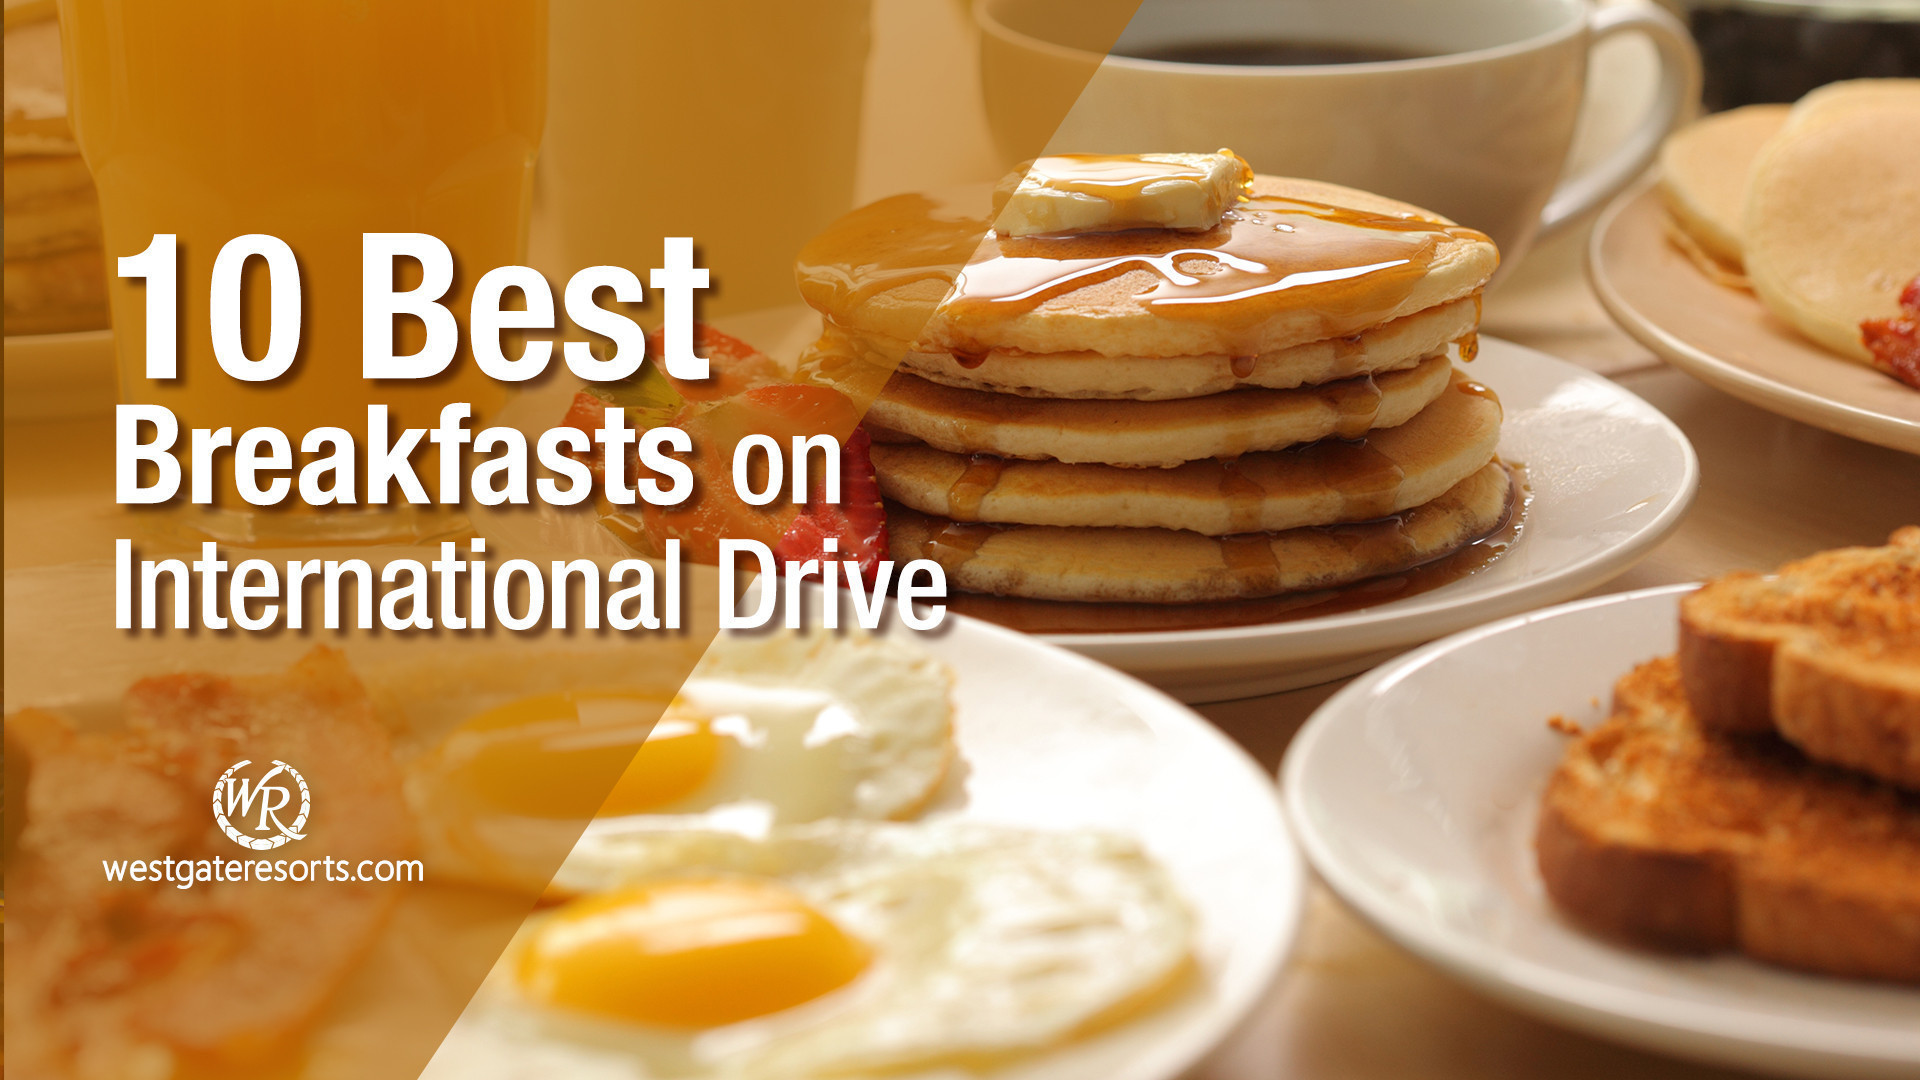 10 Best Breakfasts in Orlando on International Drive | I Drive Breakfast Guide For Orlando